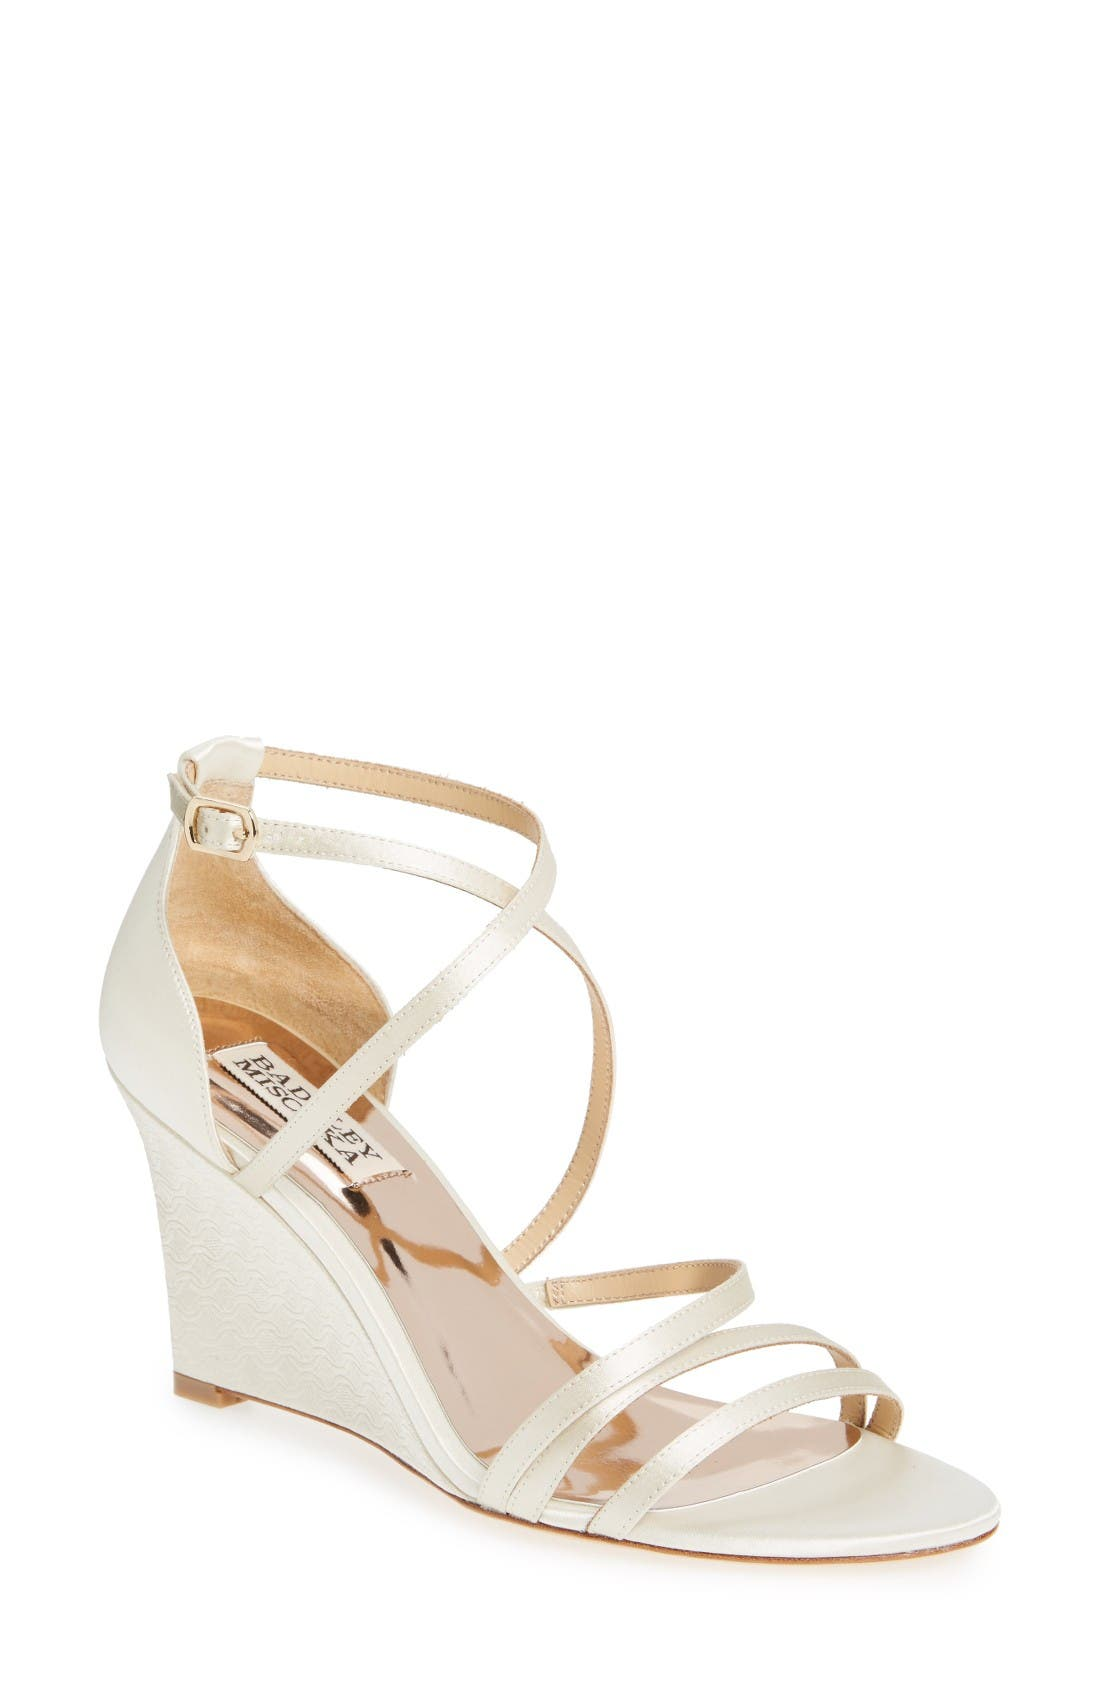 Main Image - Badgley Mischka Bonanza Strappy Wedge Sandal (Women)